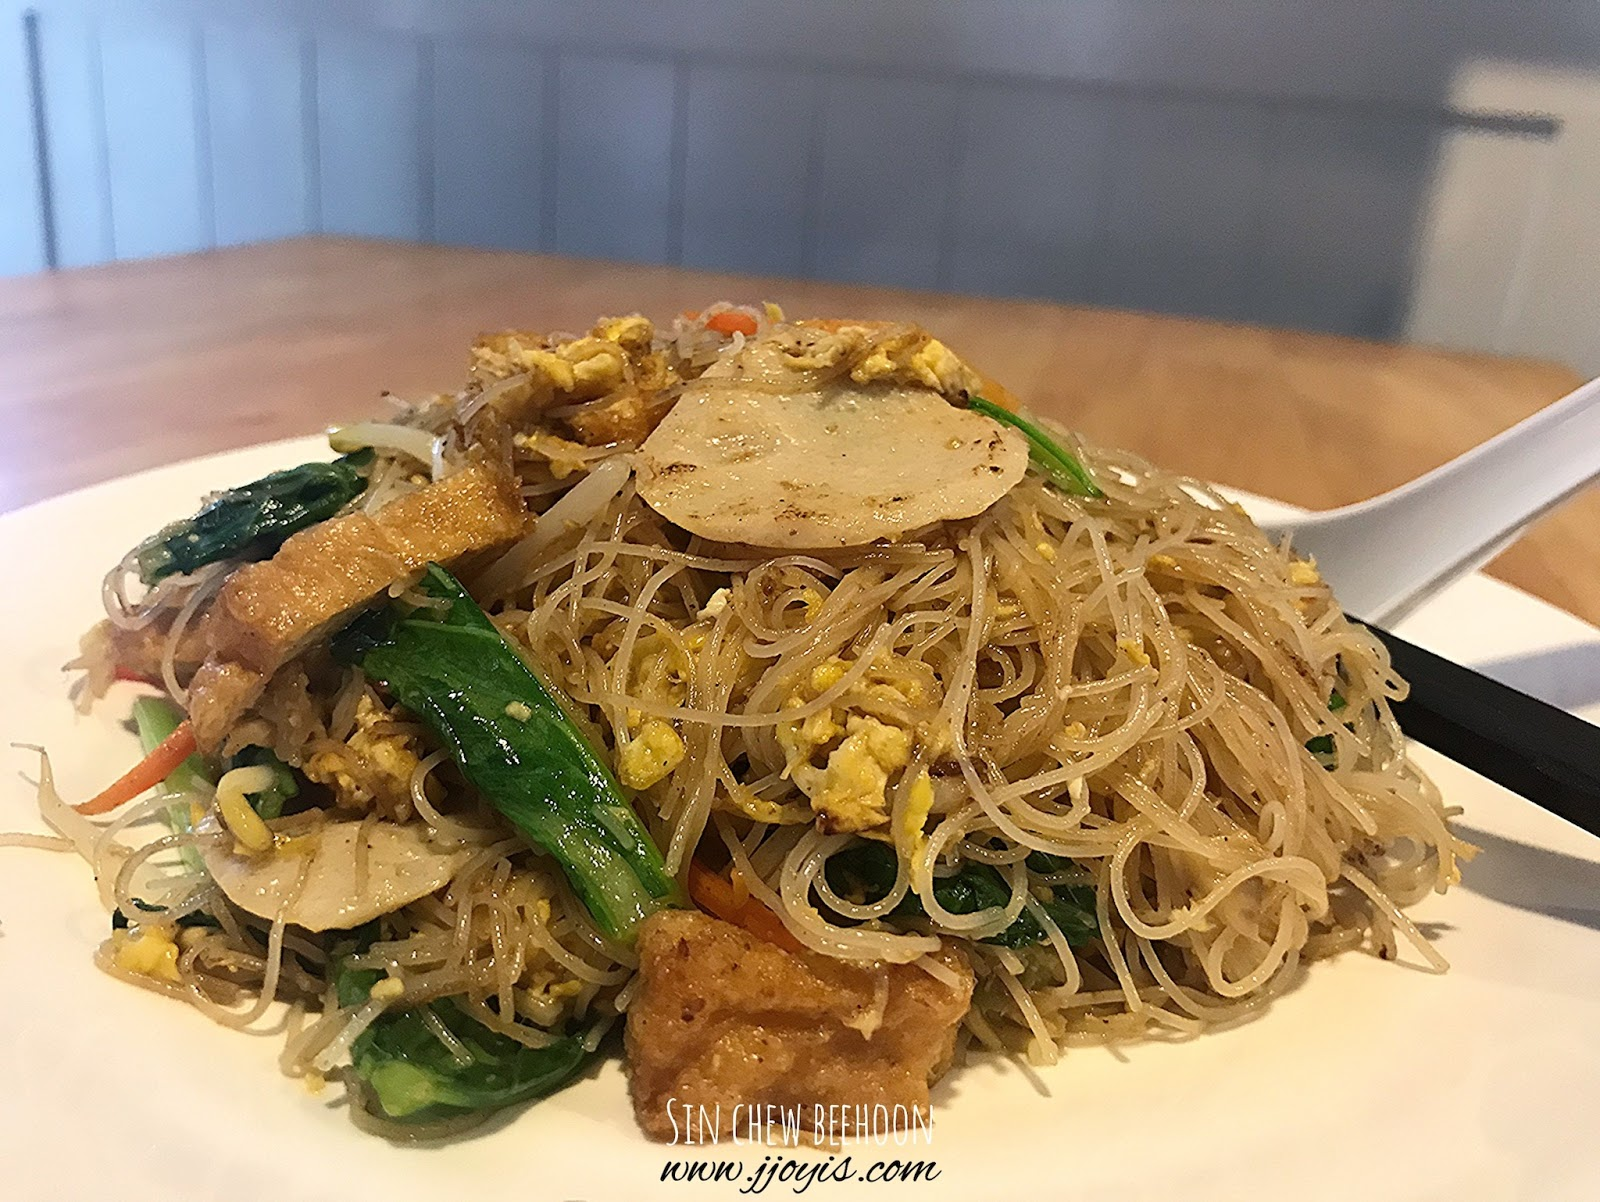 zi zi vegetarian yishun food review sin chew beehoon